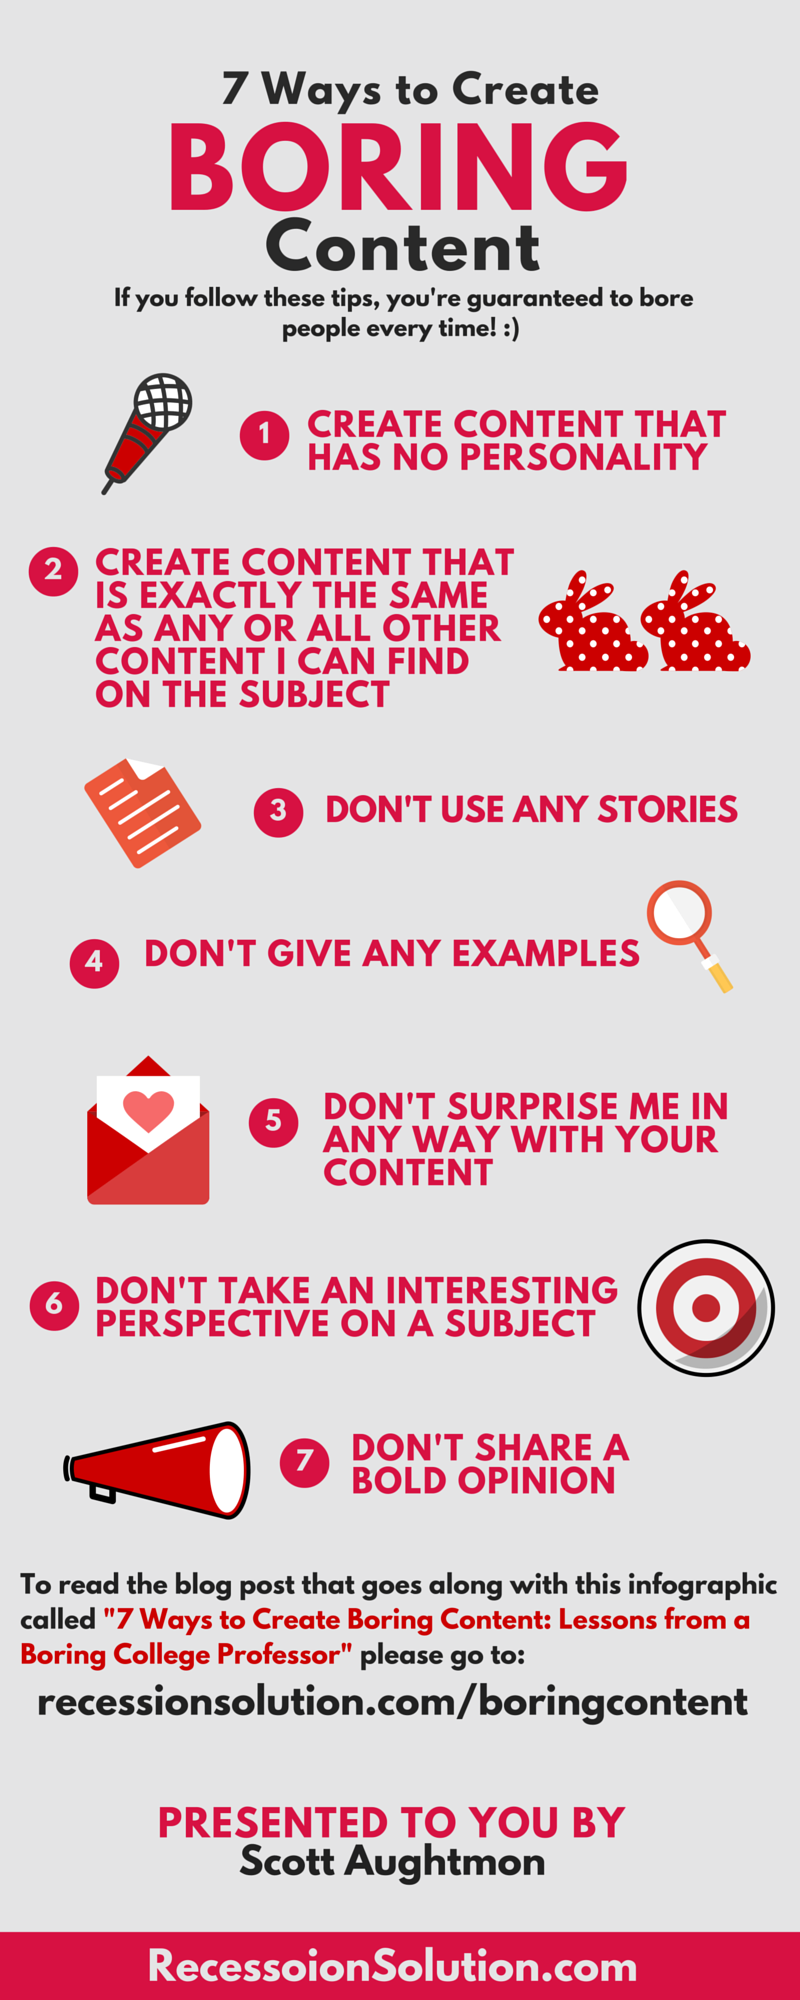 7 Proven Ways to Bore People with Your Content